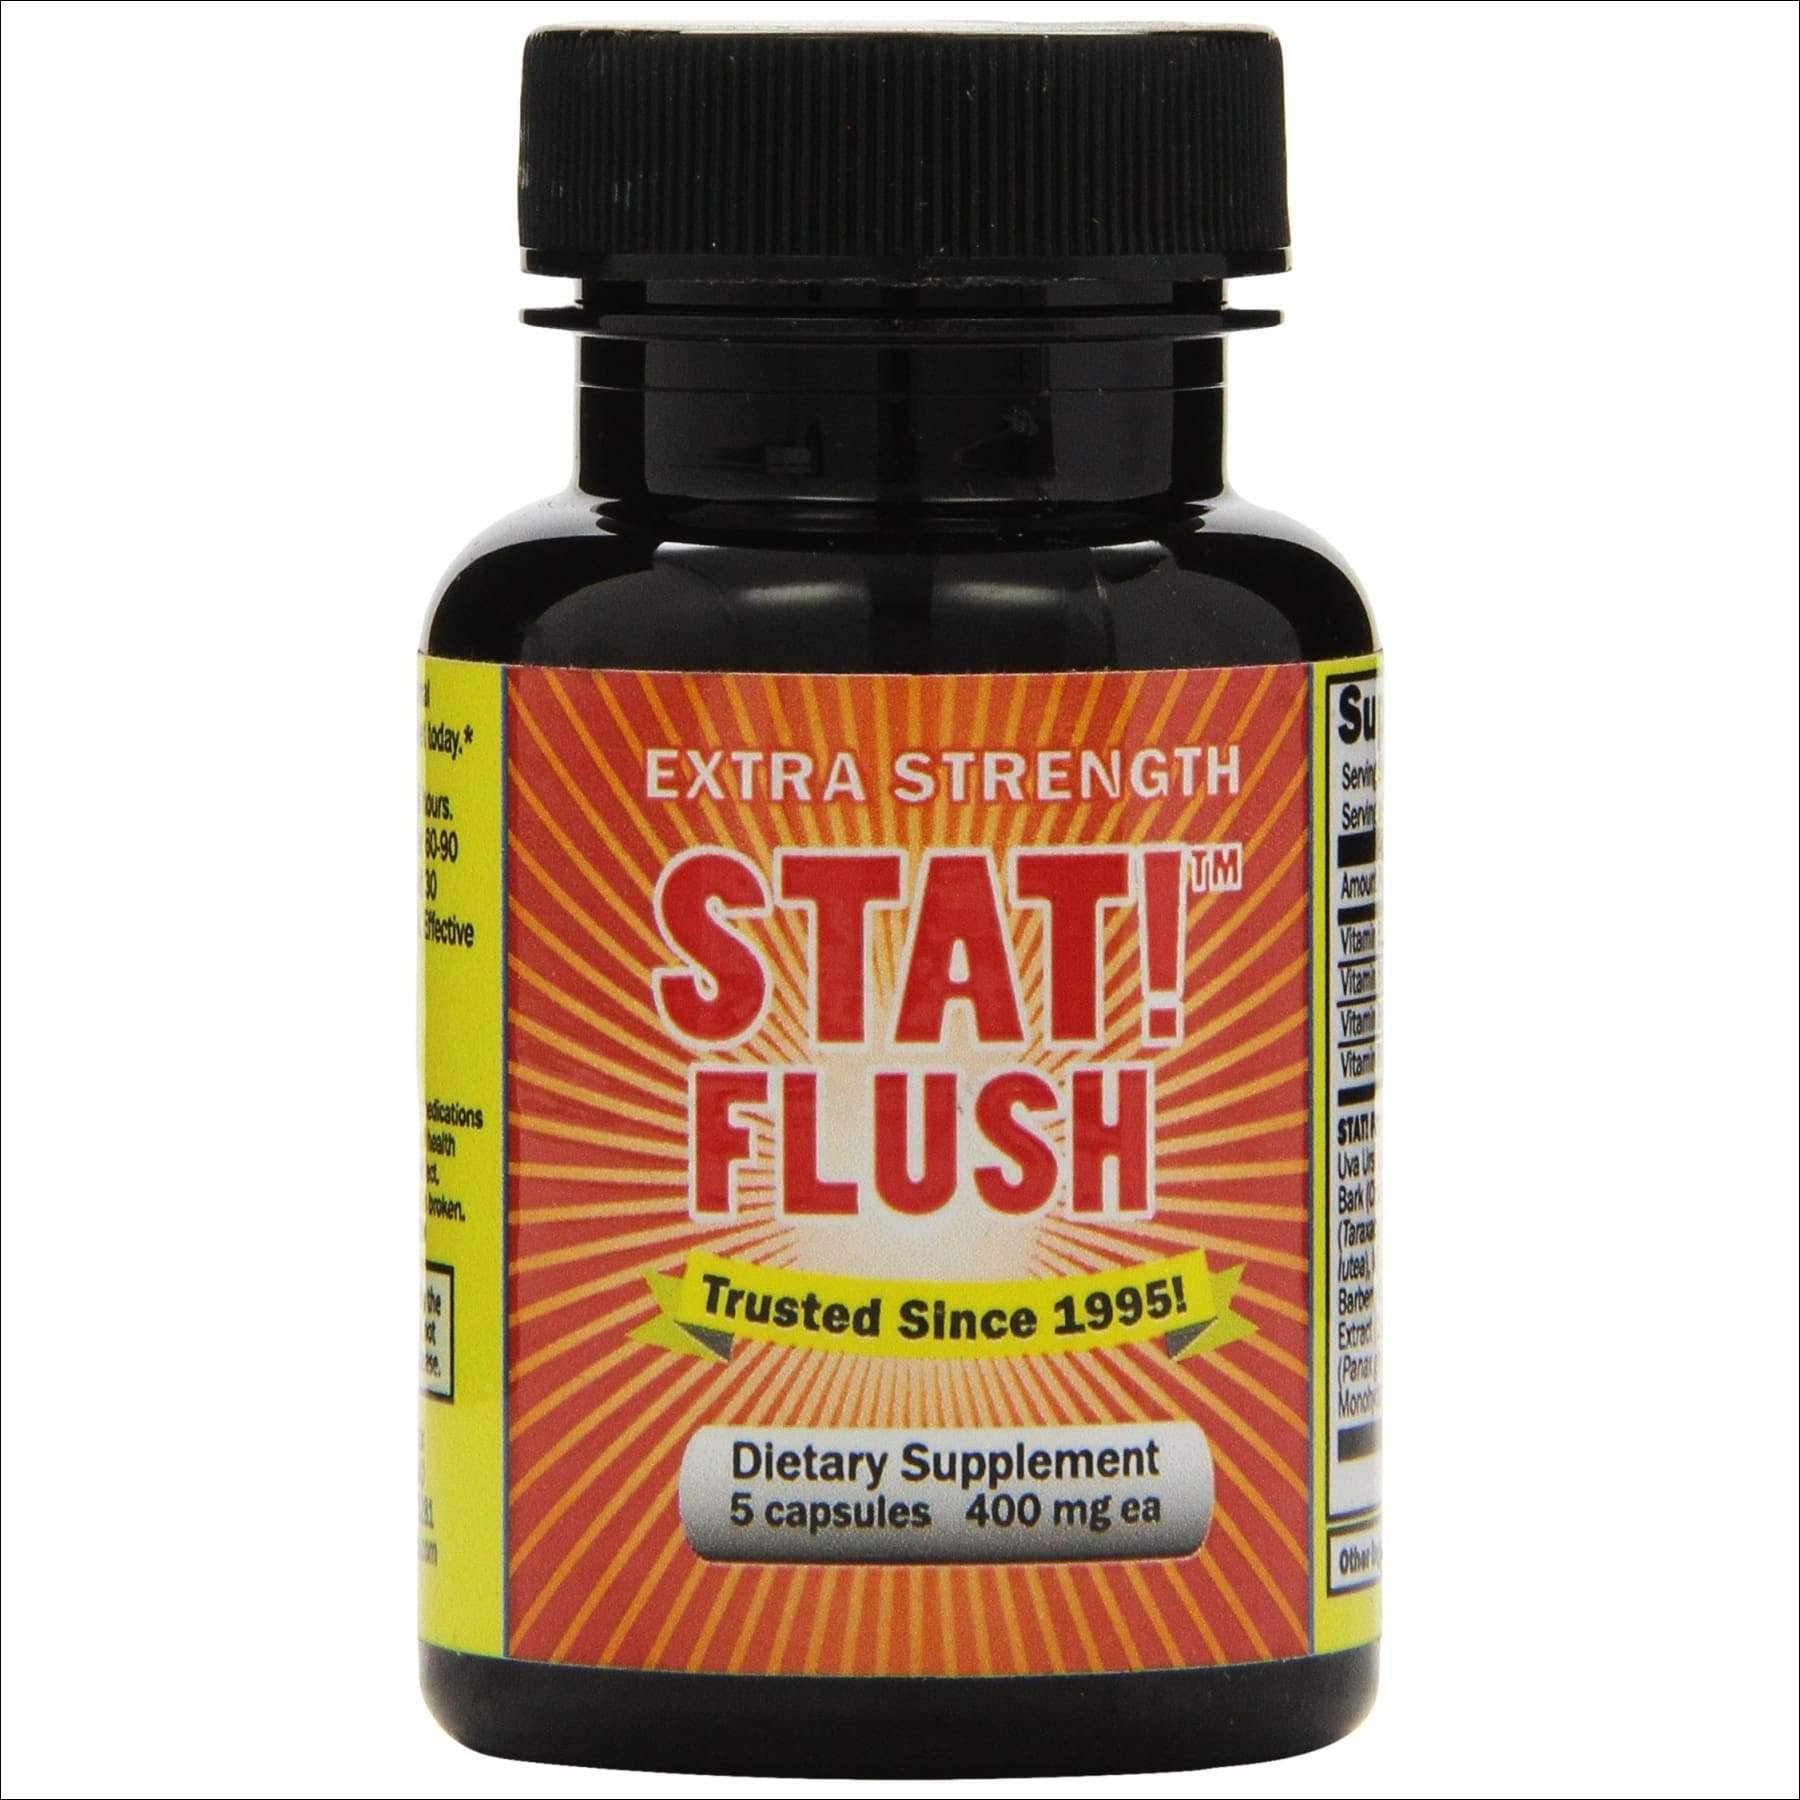 Stat Flush Extra Strength Dietary Supplement